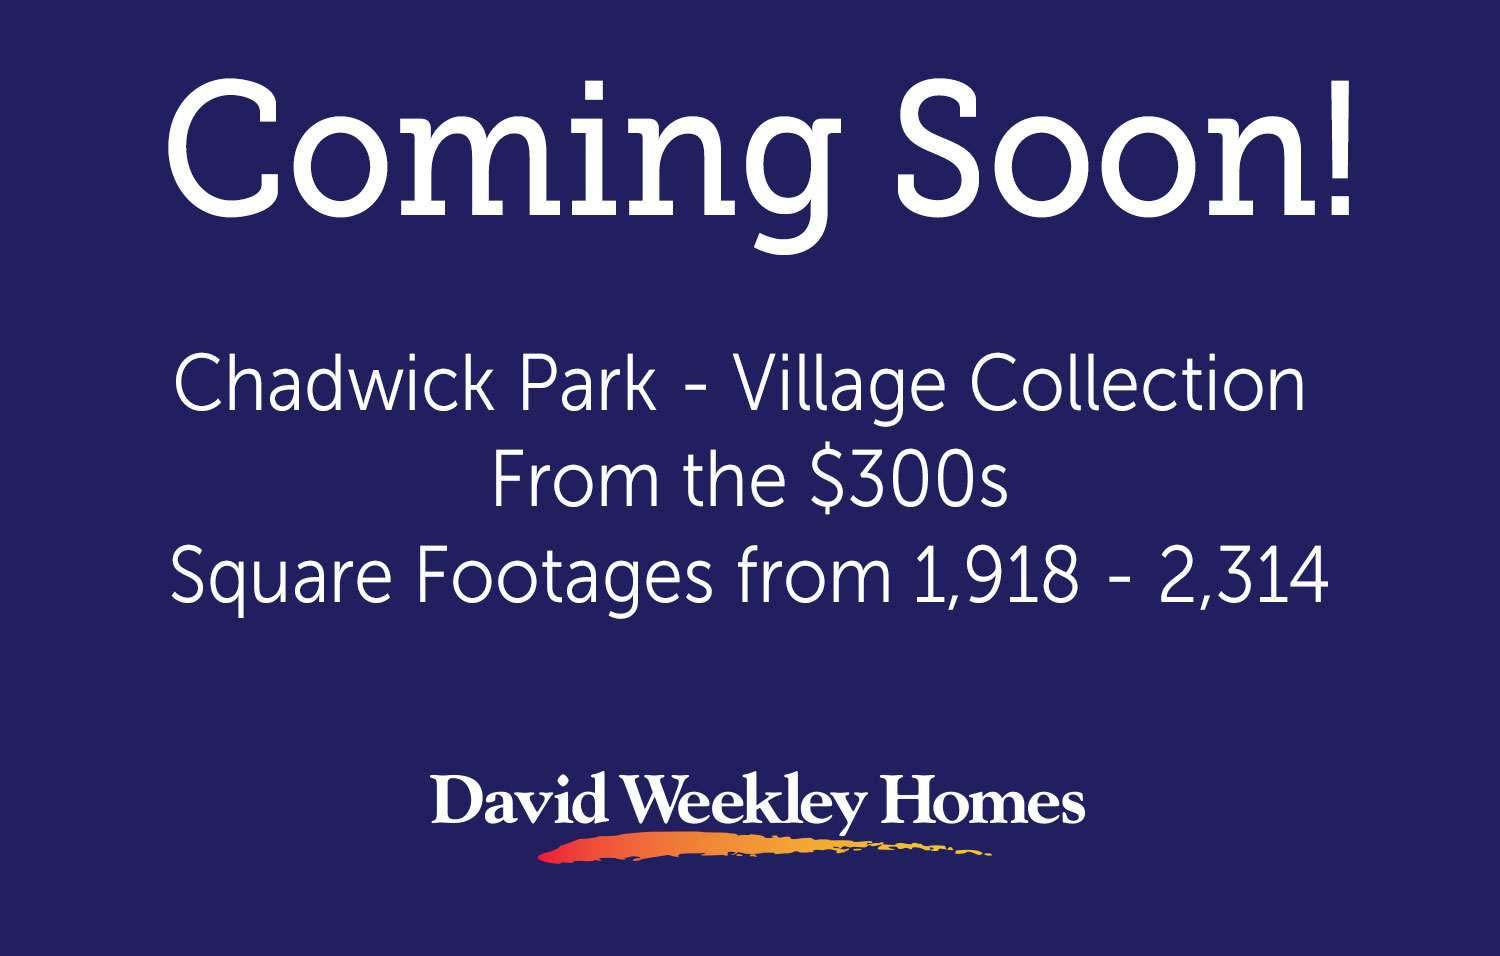 Chadwick Park - Village Collection